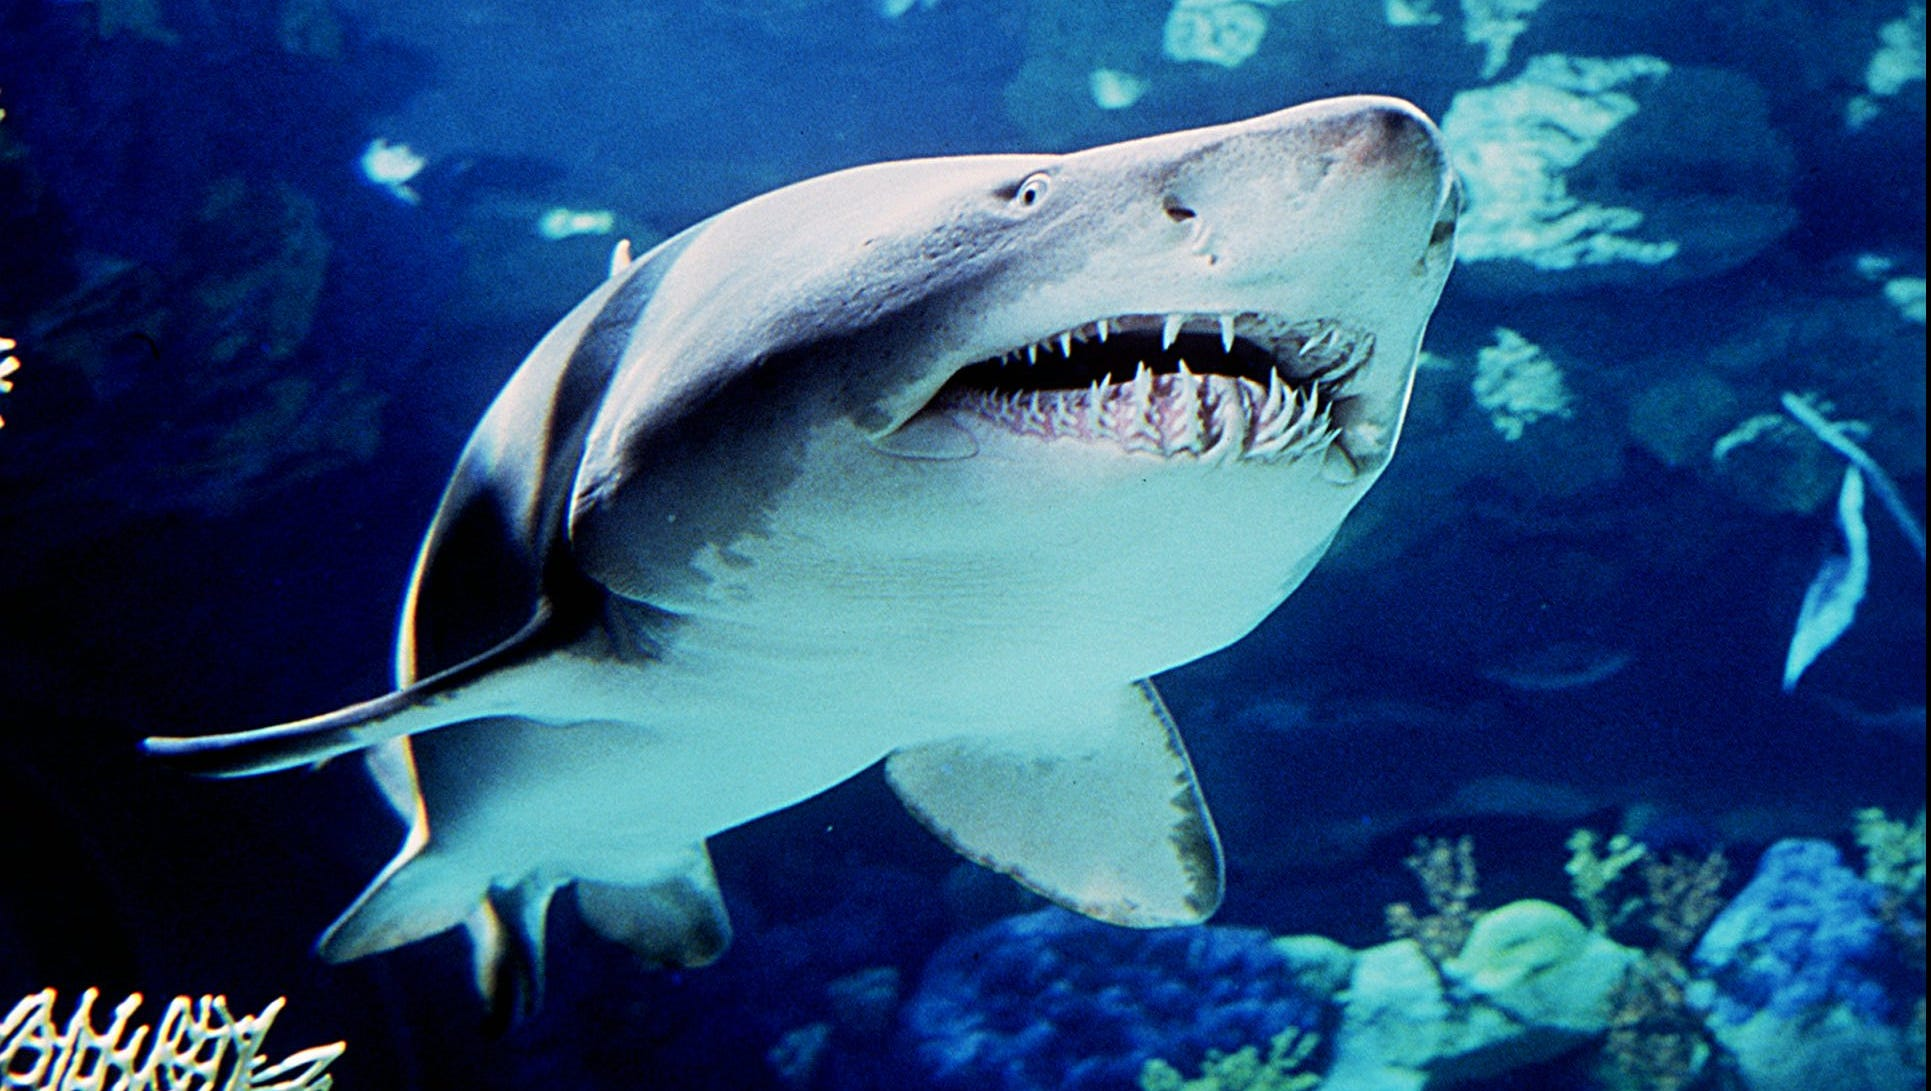 useful shark safety tips if you see a shark at the beach this summer